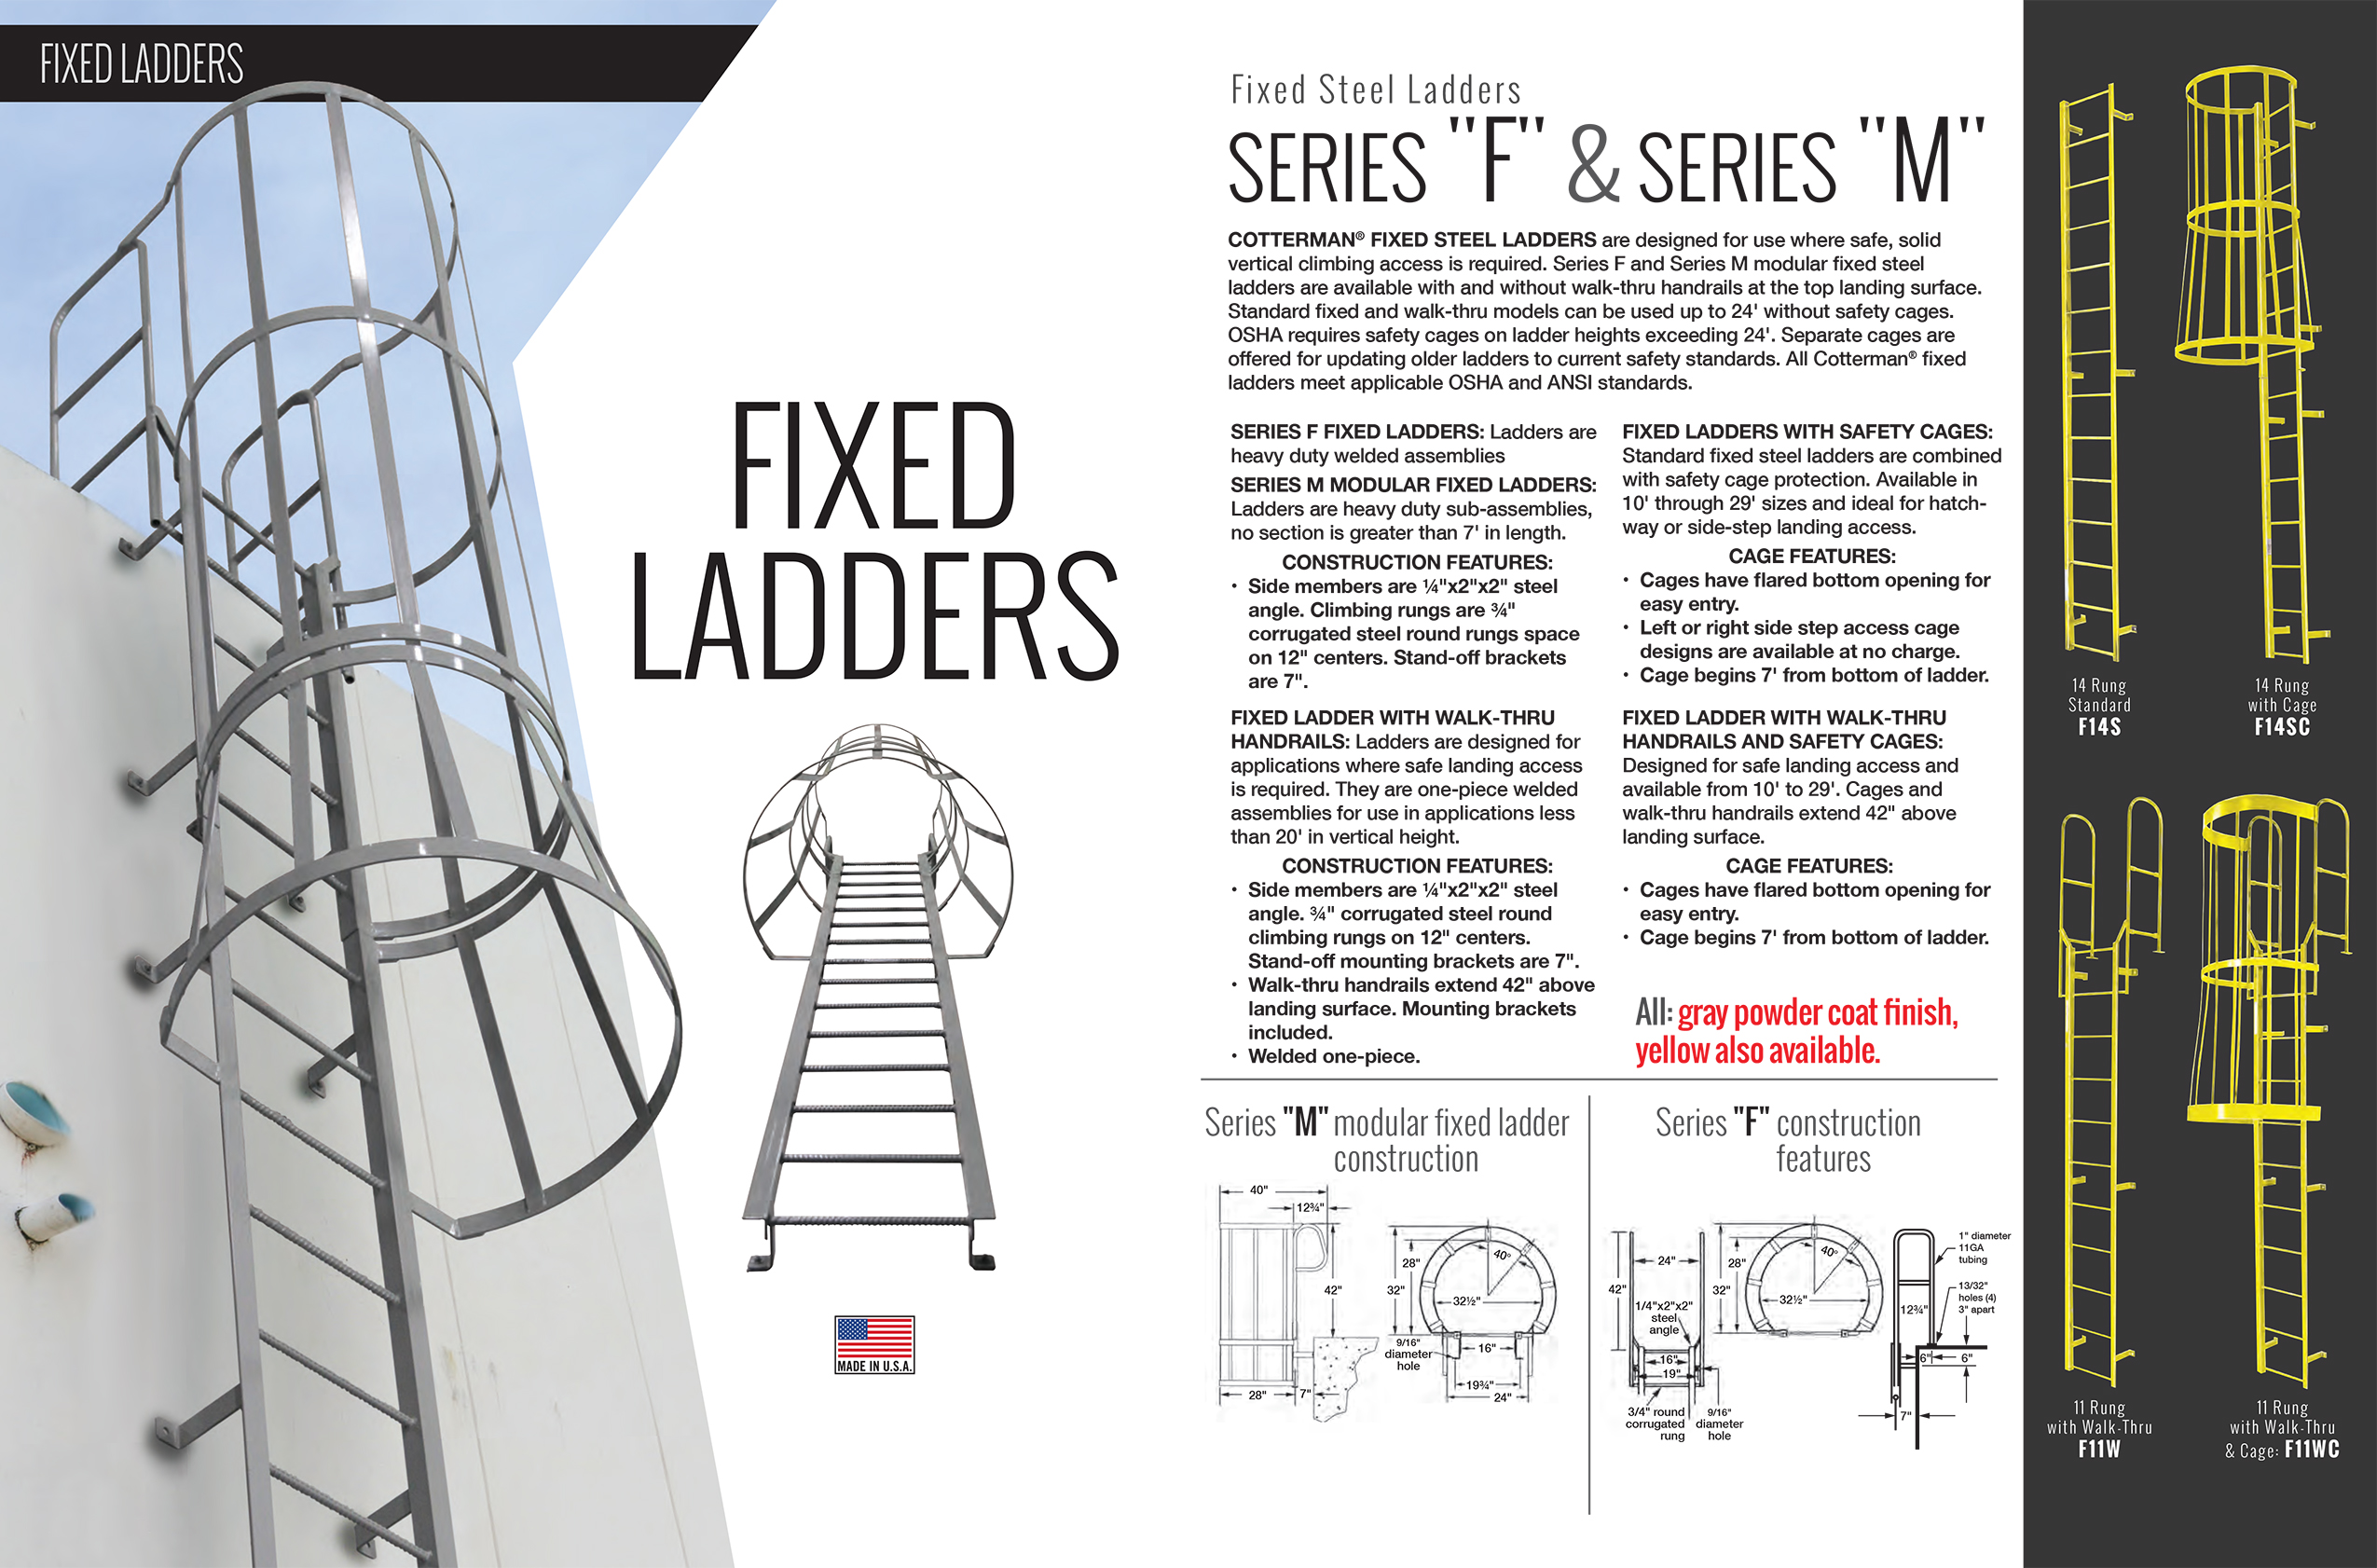 Cotterman Fixed Steel Ladders Information